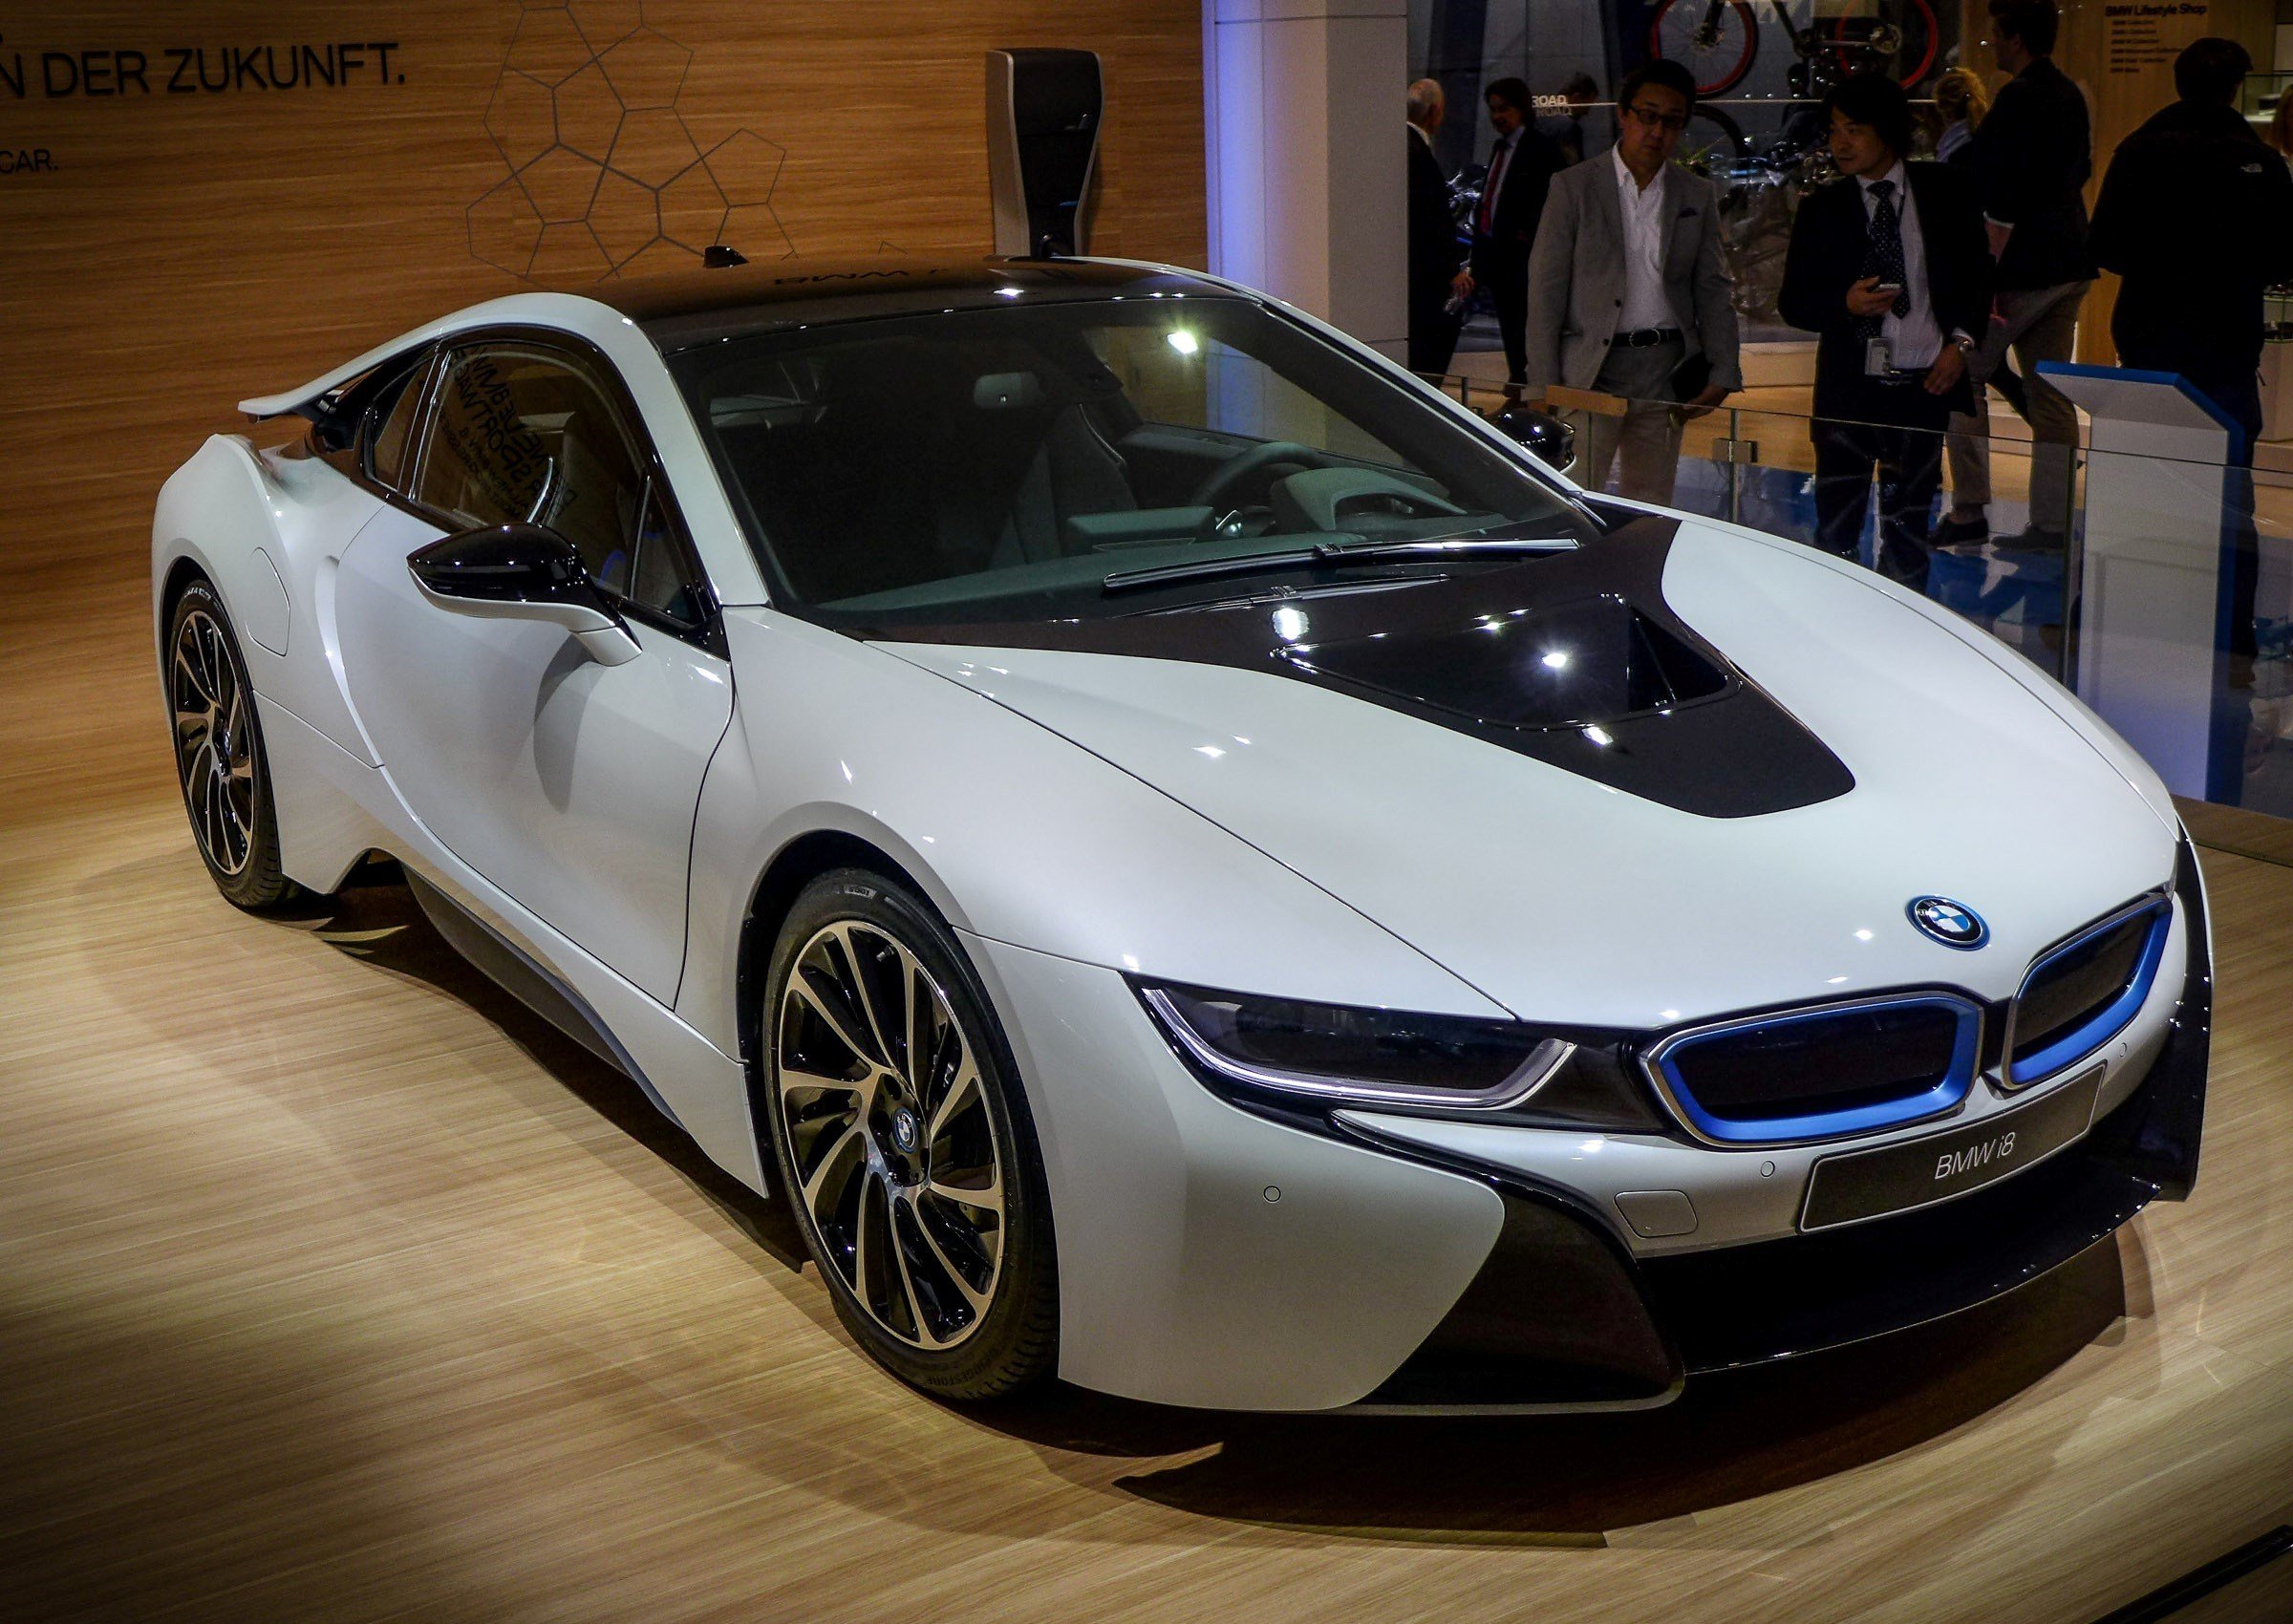 Latest New Crystal White Bmw I8 Luxury Two Seater Car Free Download